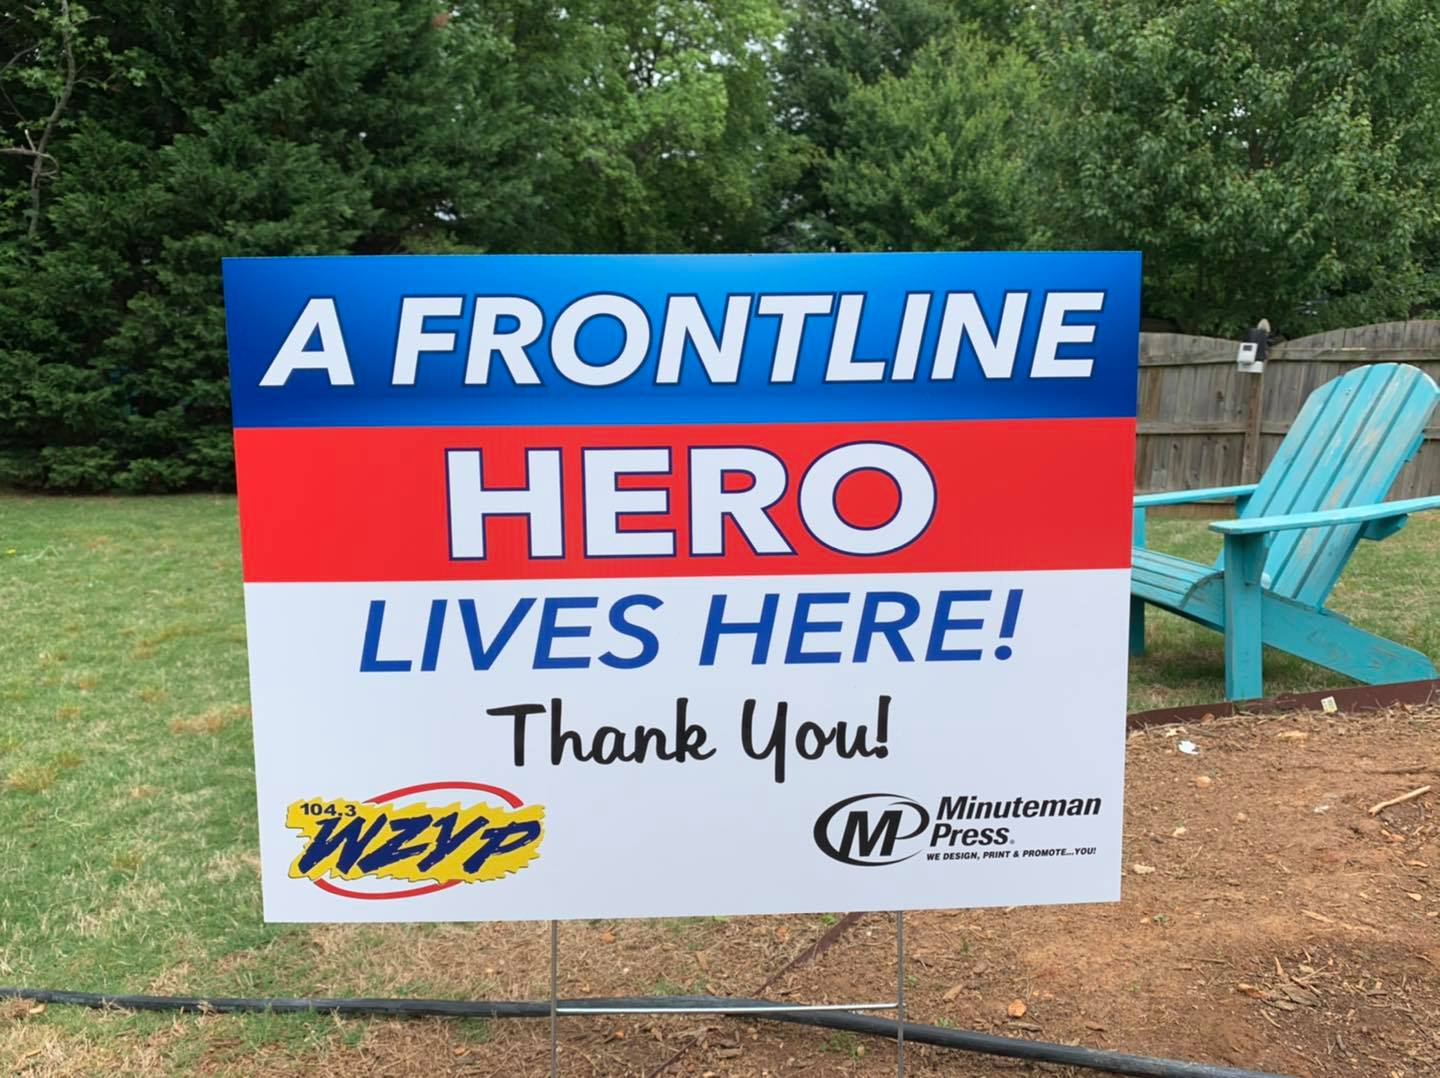 104.3 ZYP wants to salute our local frontline heroes!